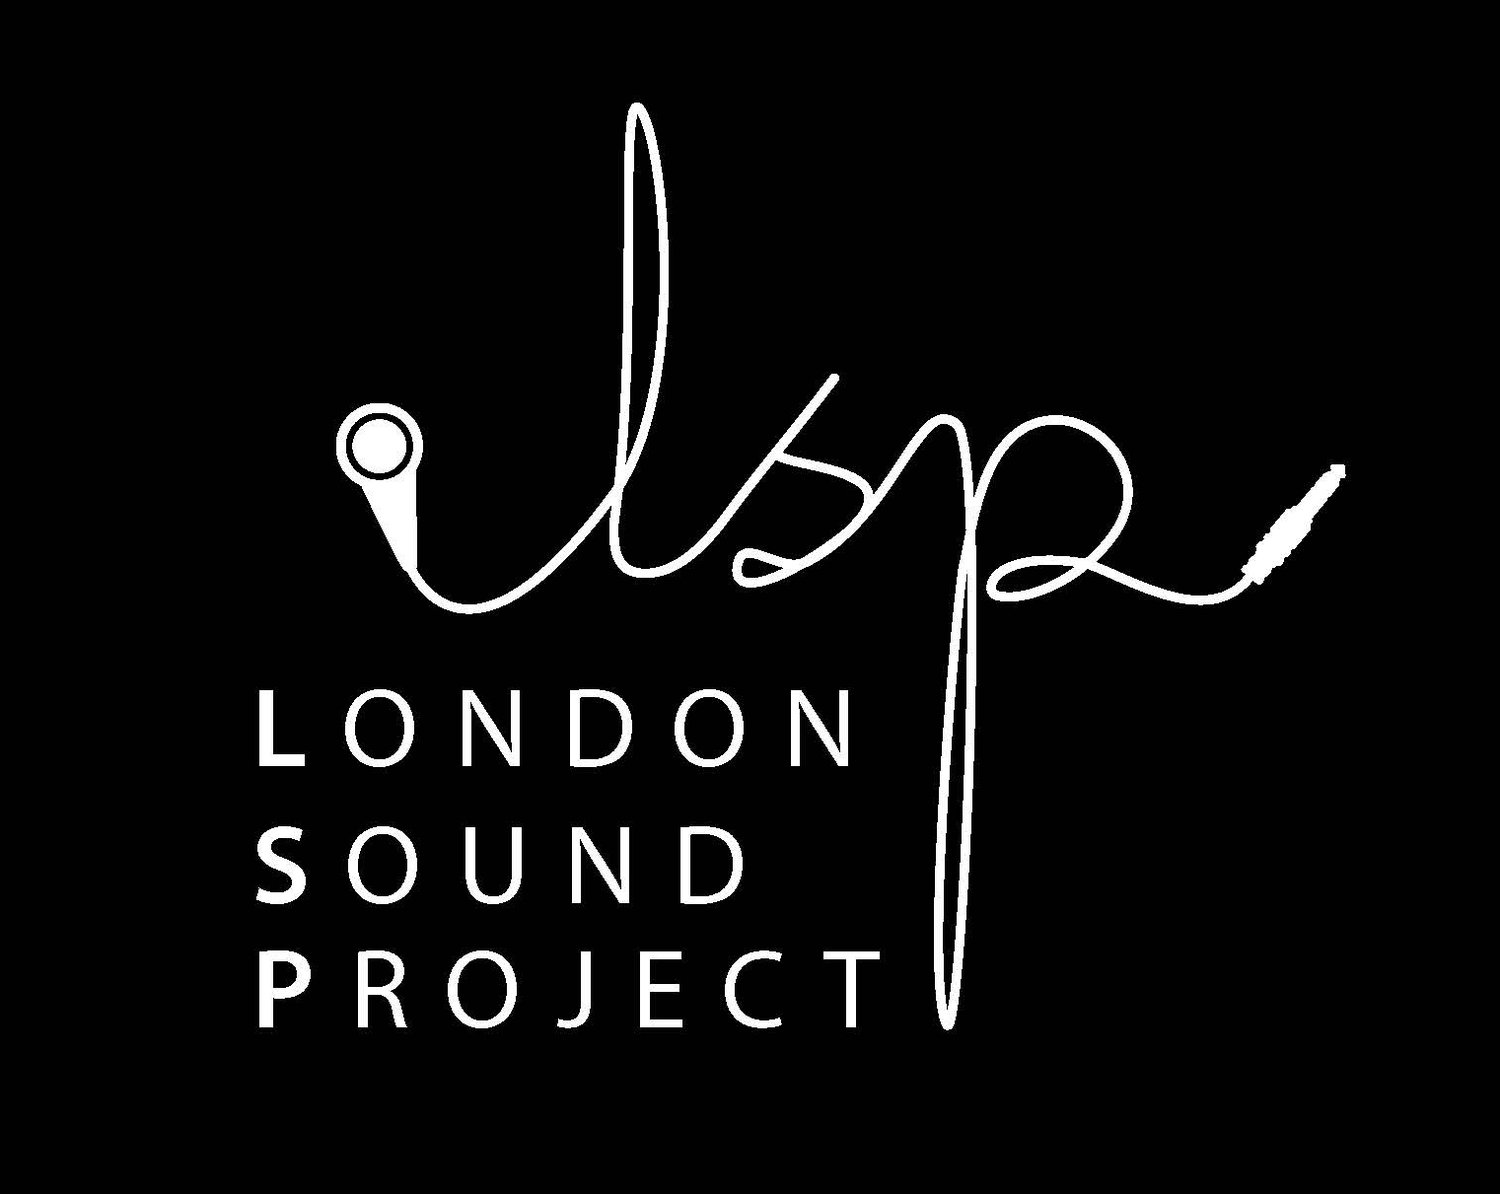 LONDON SOUND PROJECT